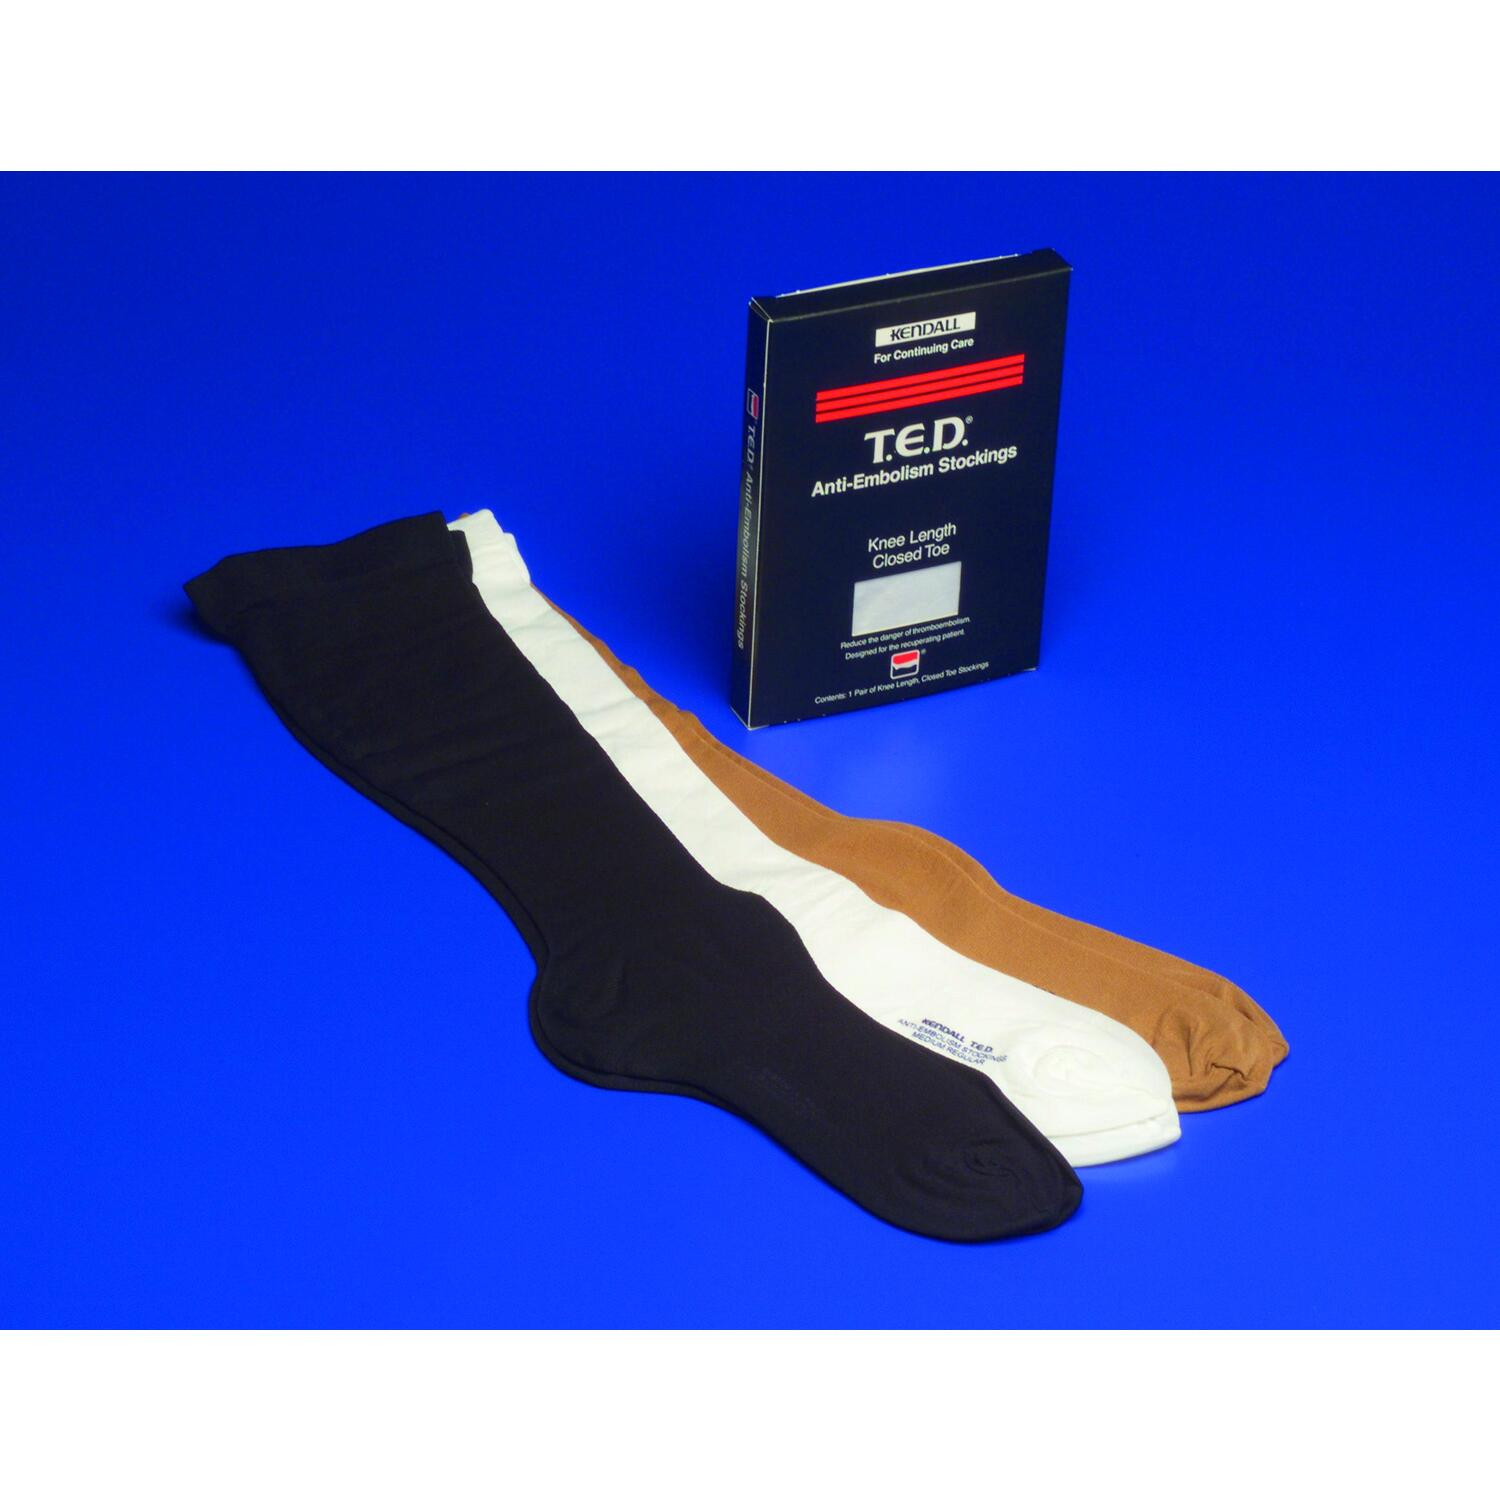 knee length versus thigh length ted Kendall knee length ted anti-embolism stockings reduce venous stasis below knee when thigh length styles are medically contraindicated buy now.